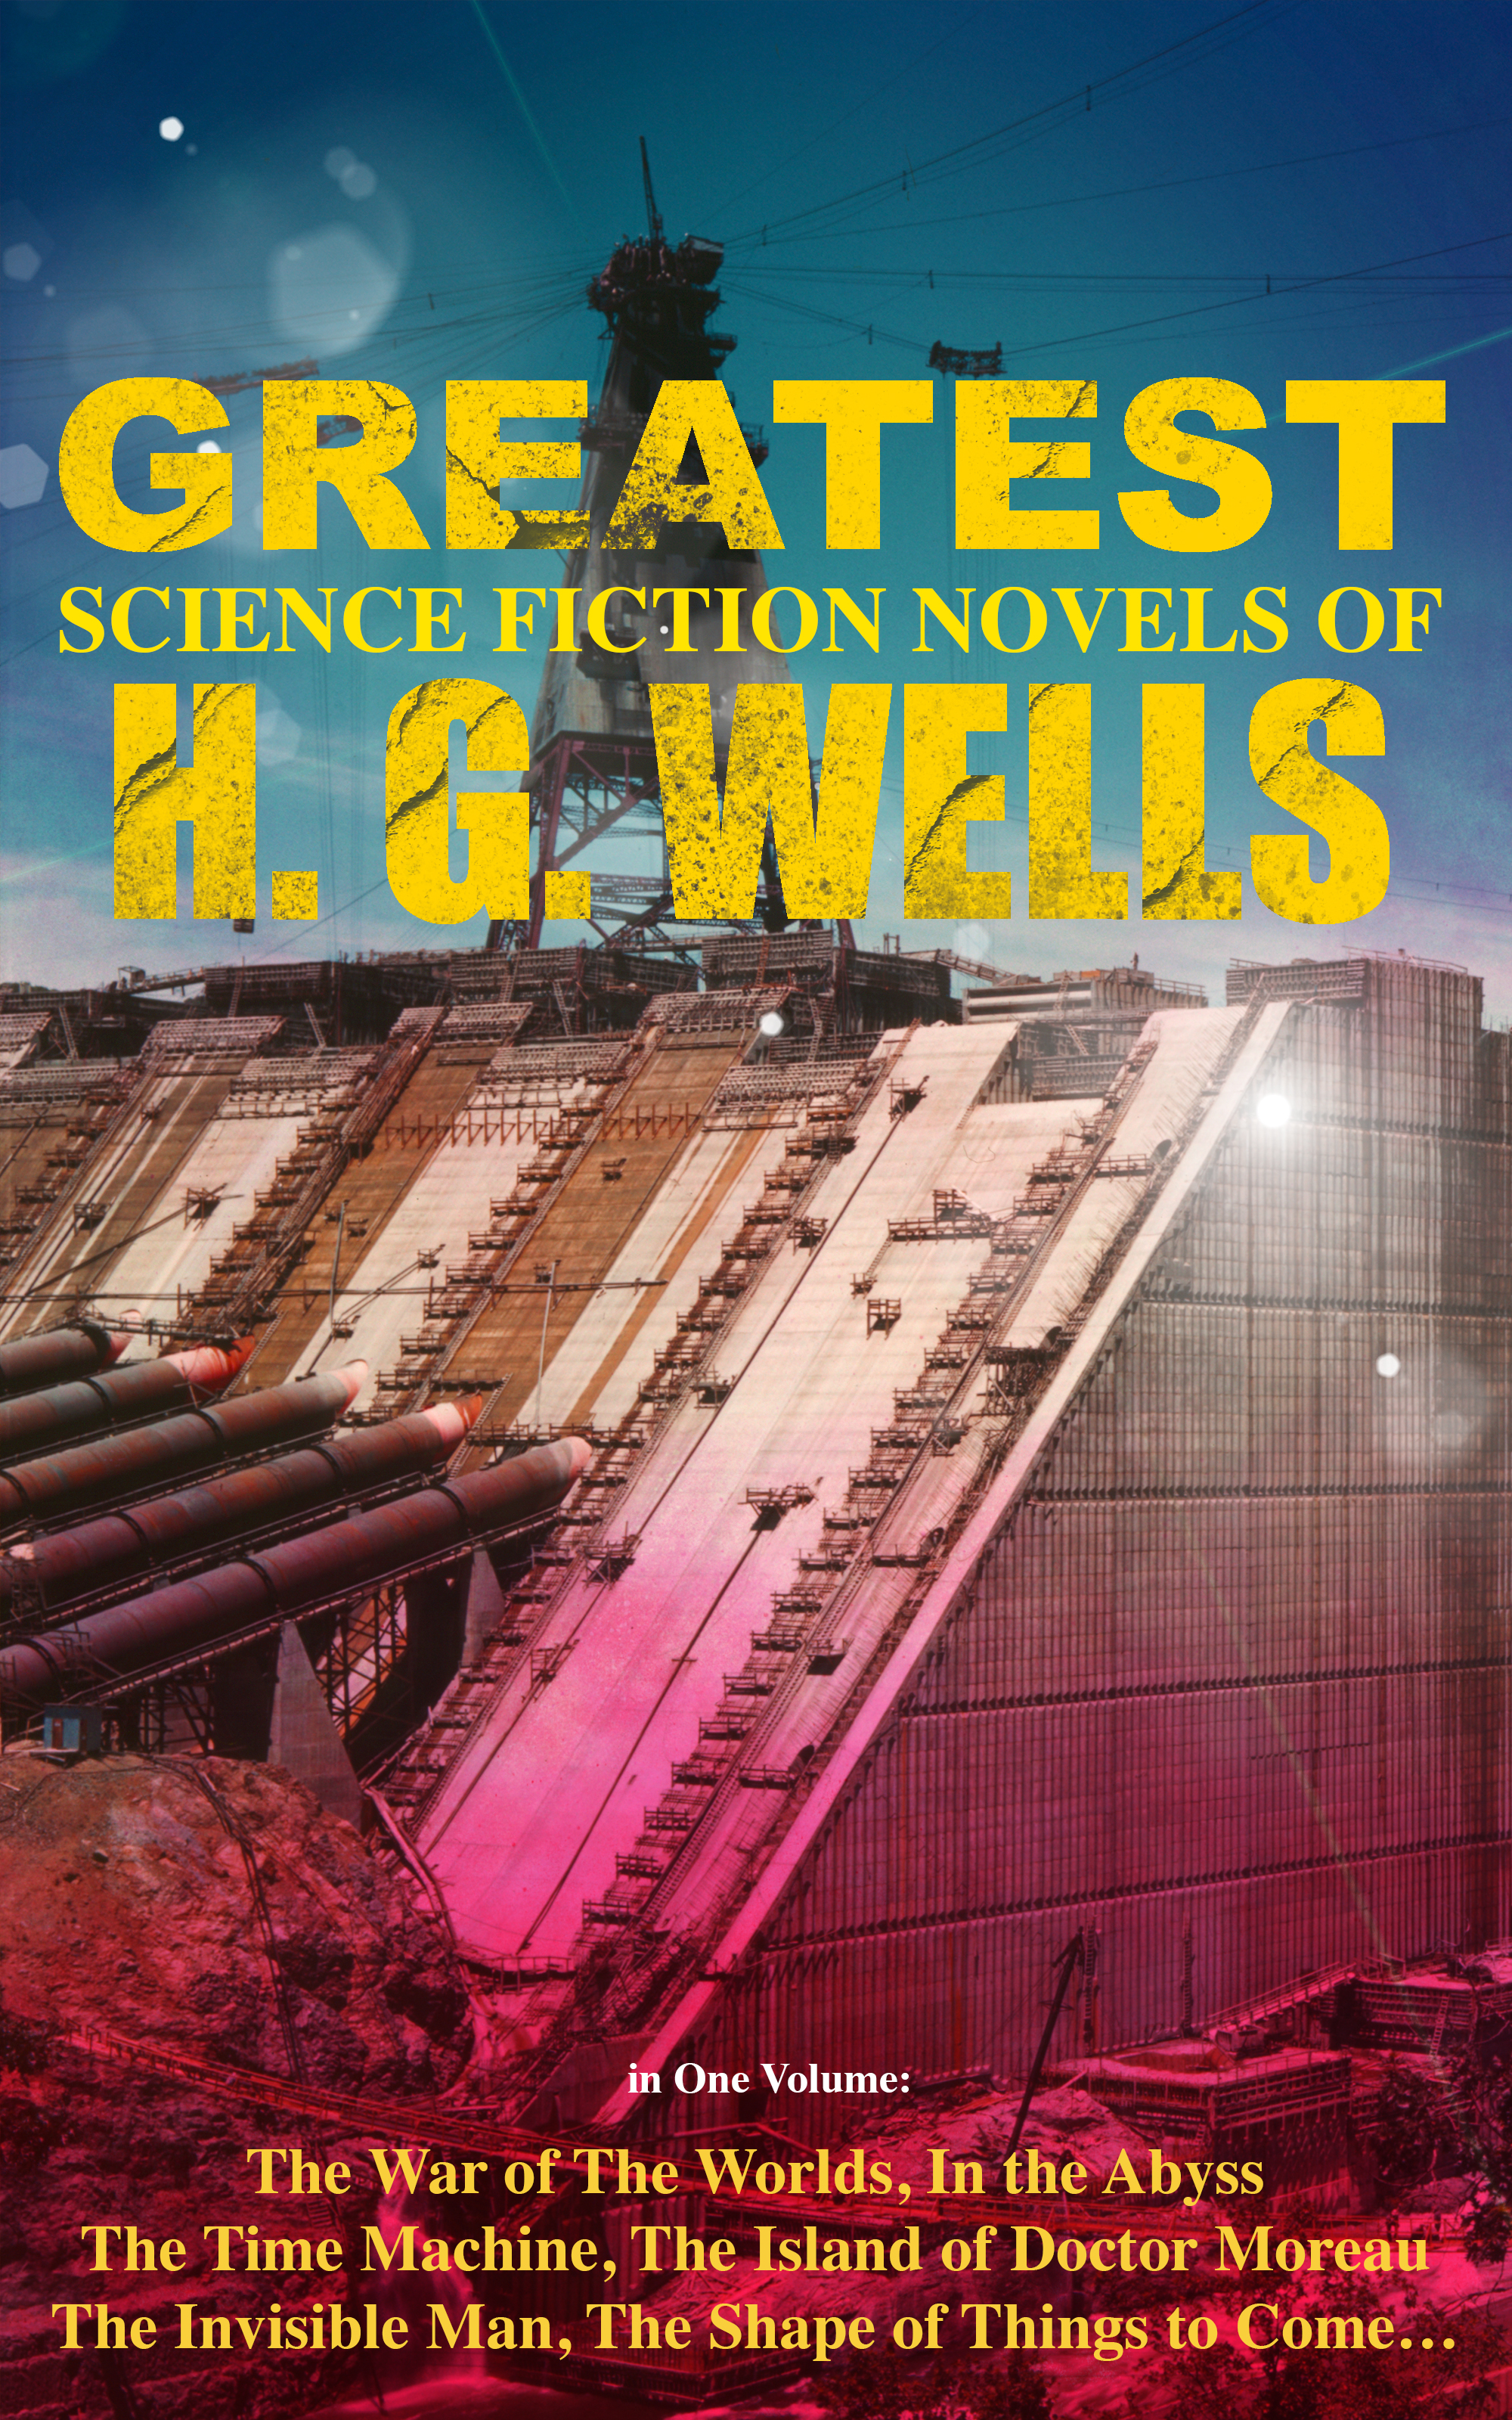 Герберт Уэллс The Greatest Science Fiction Novels of H. G. Wells in One Volume: The War of The Worlds, In the Abyss, The Time Machine, The Island of Doctor Moreau, The Invisible Man, The Shape of Things to Come… цена 2017